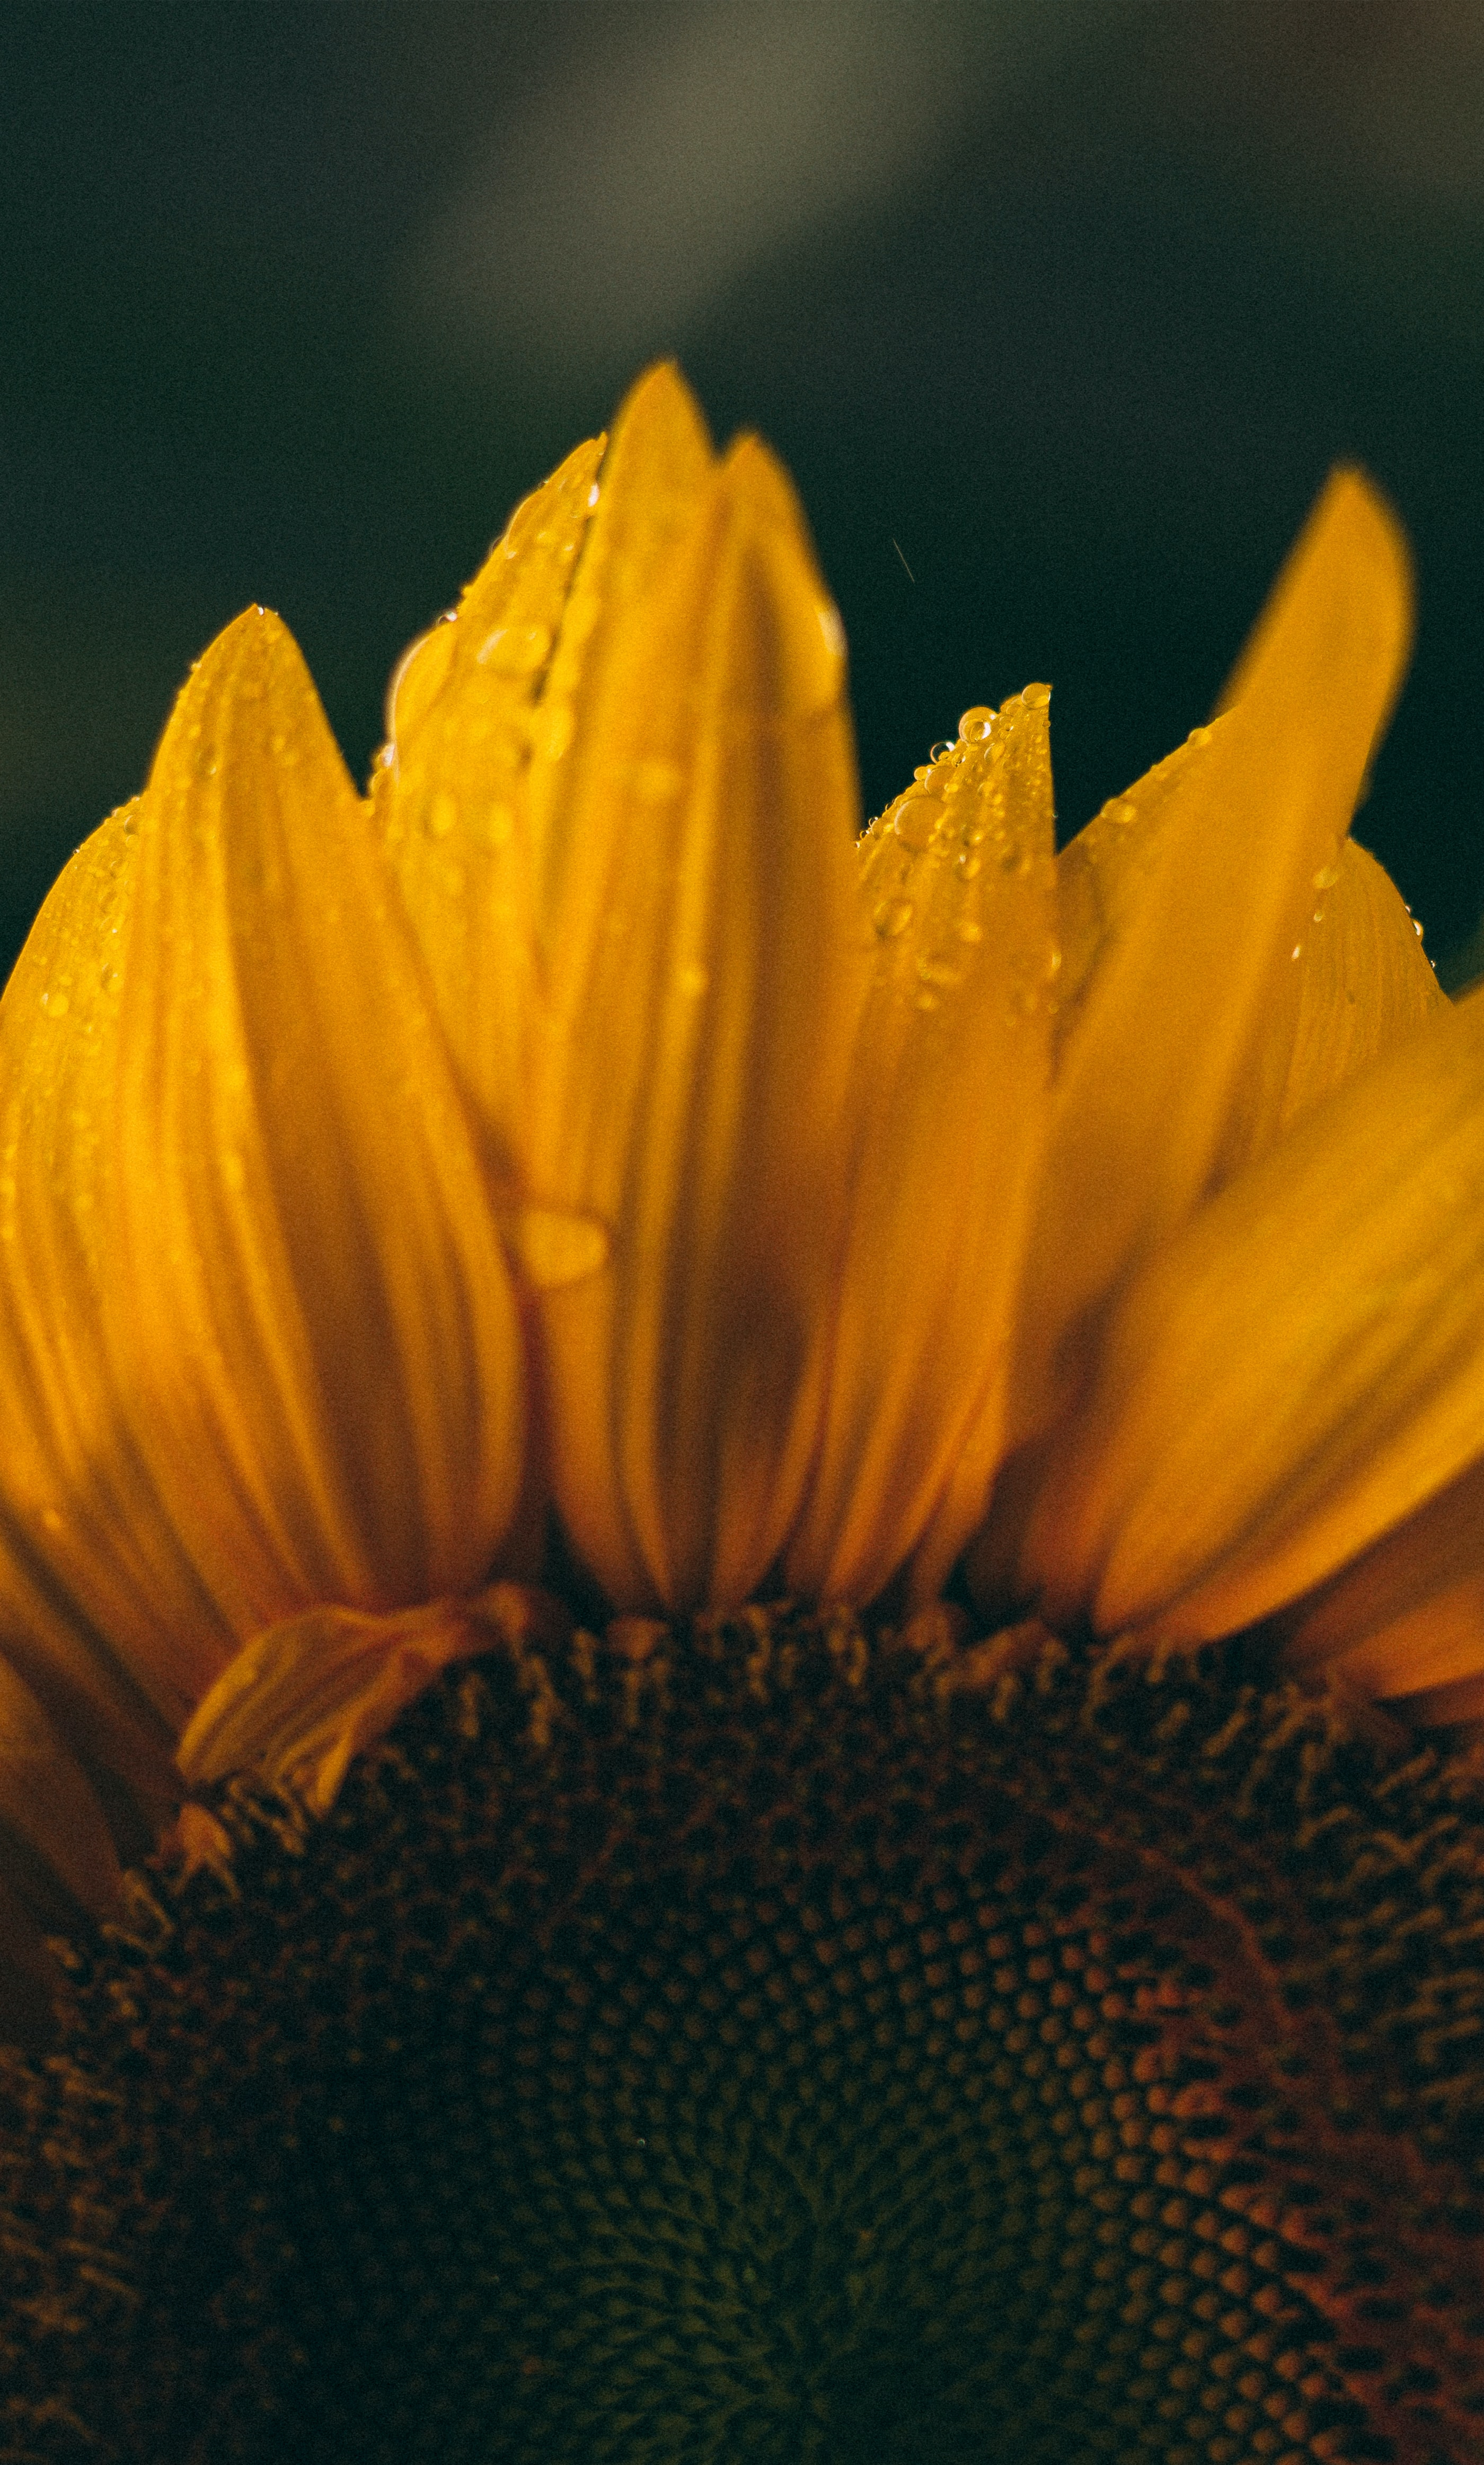 macro photography of yellow sunflower